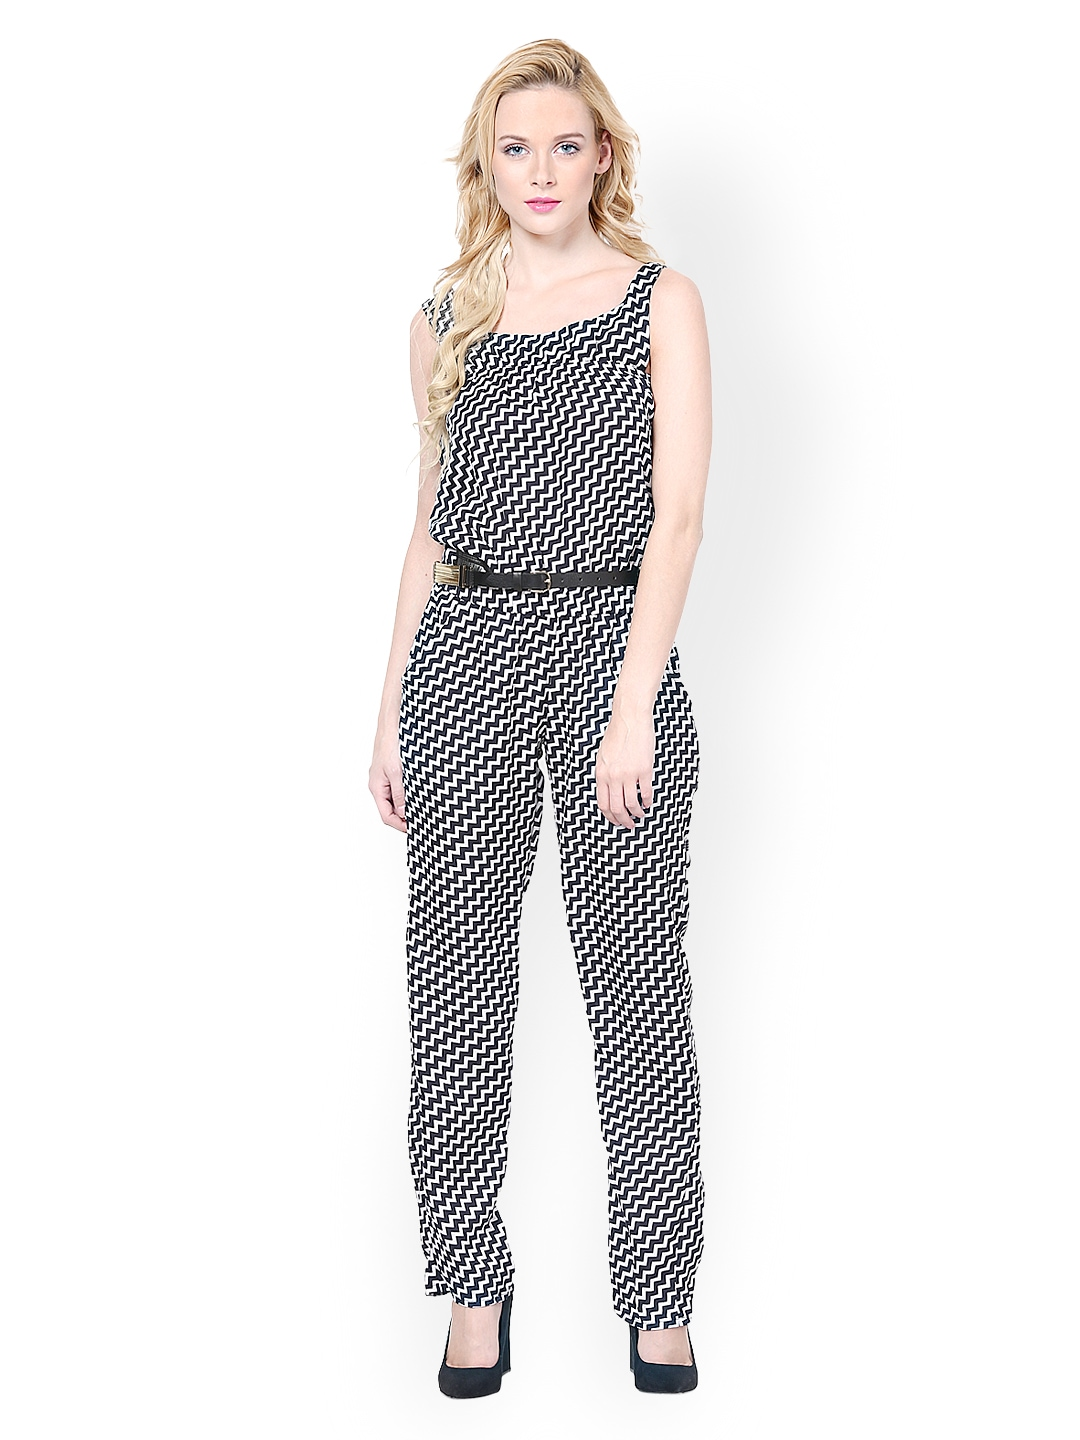 Popular Women39s Jumpsuits One Piece At Rs 389 Lowest Price Online India